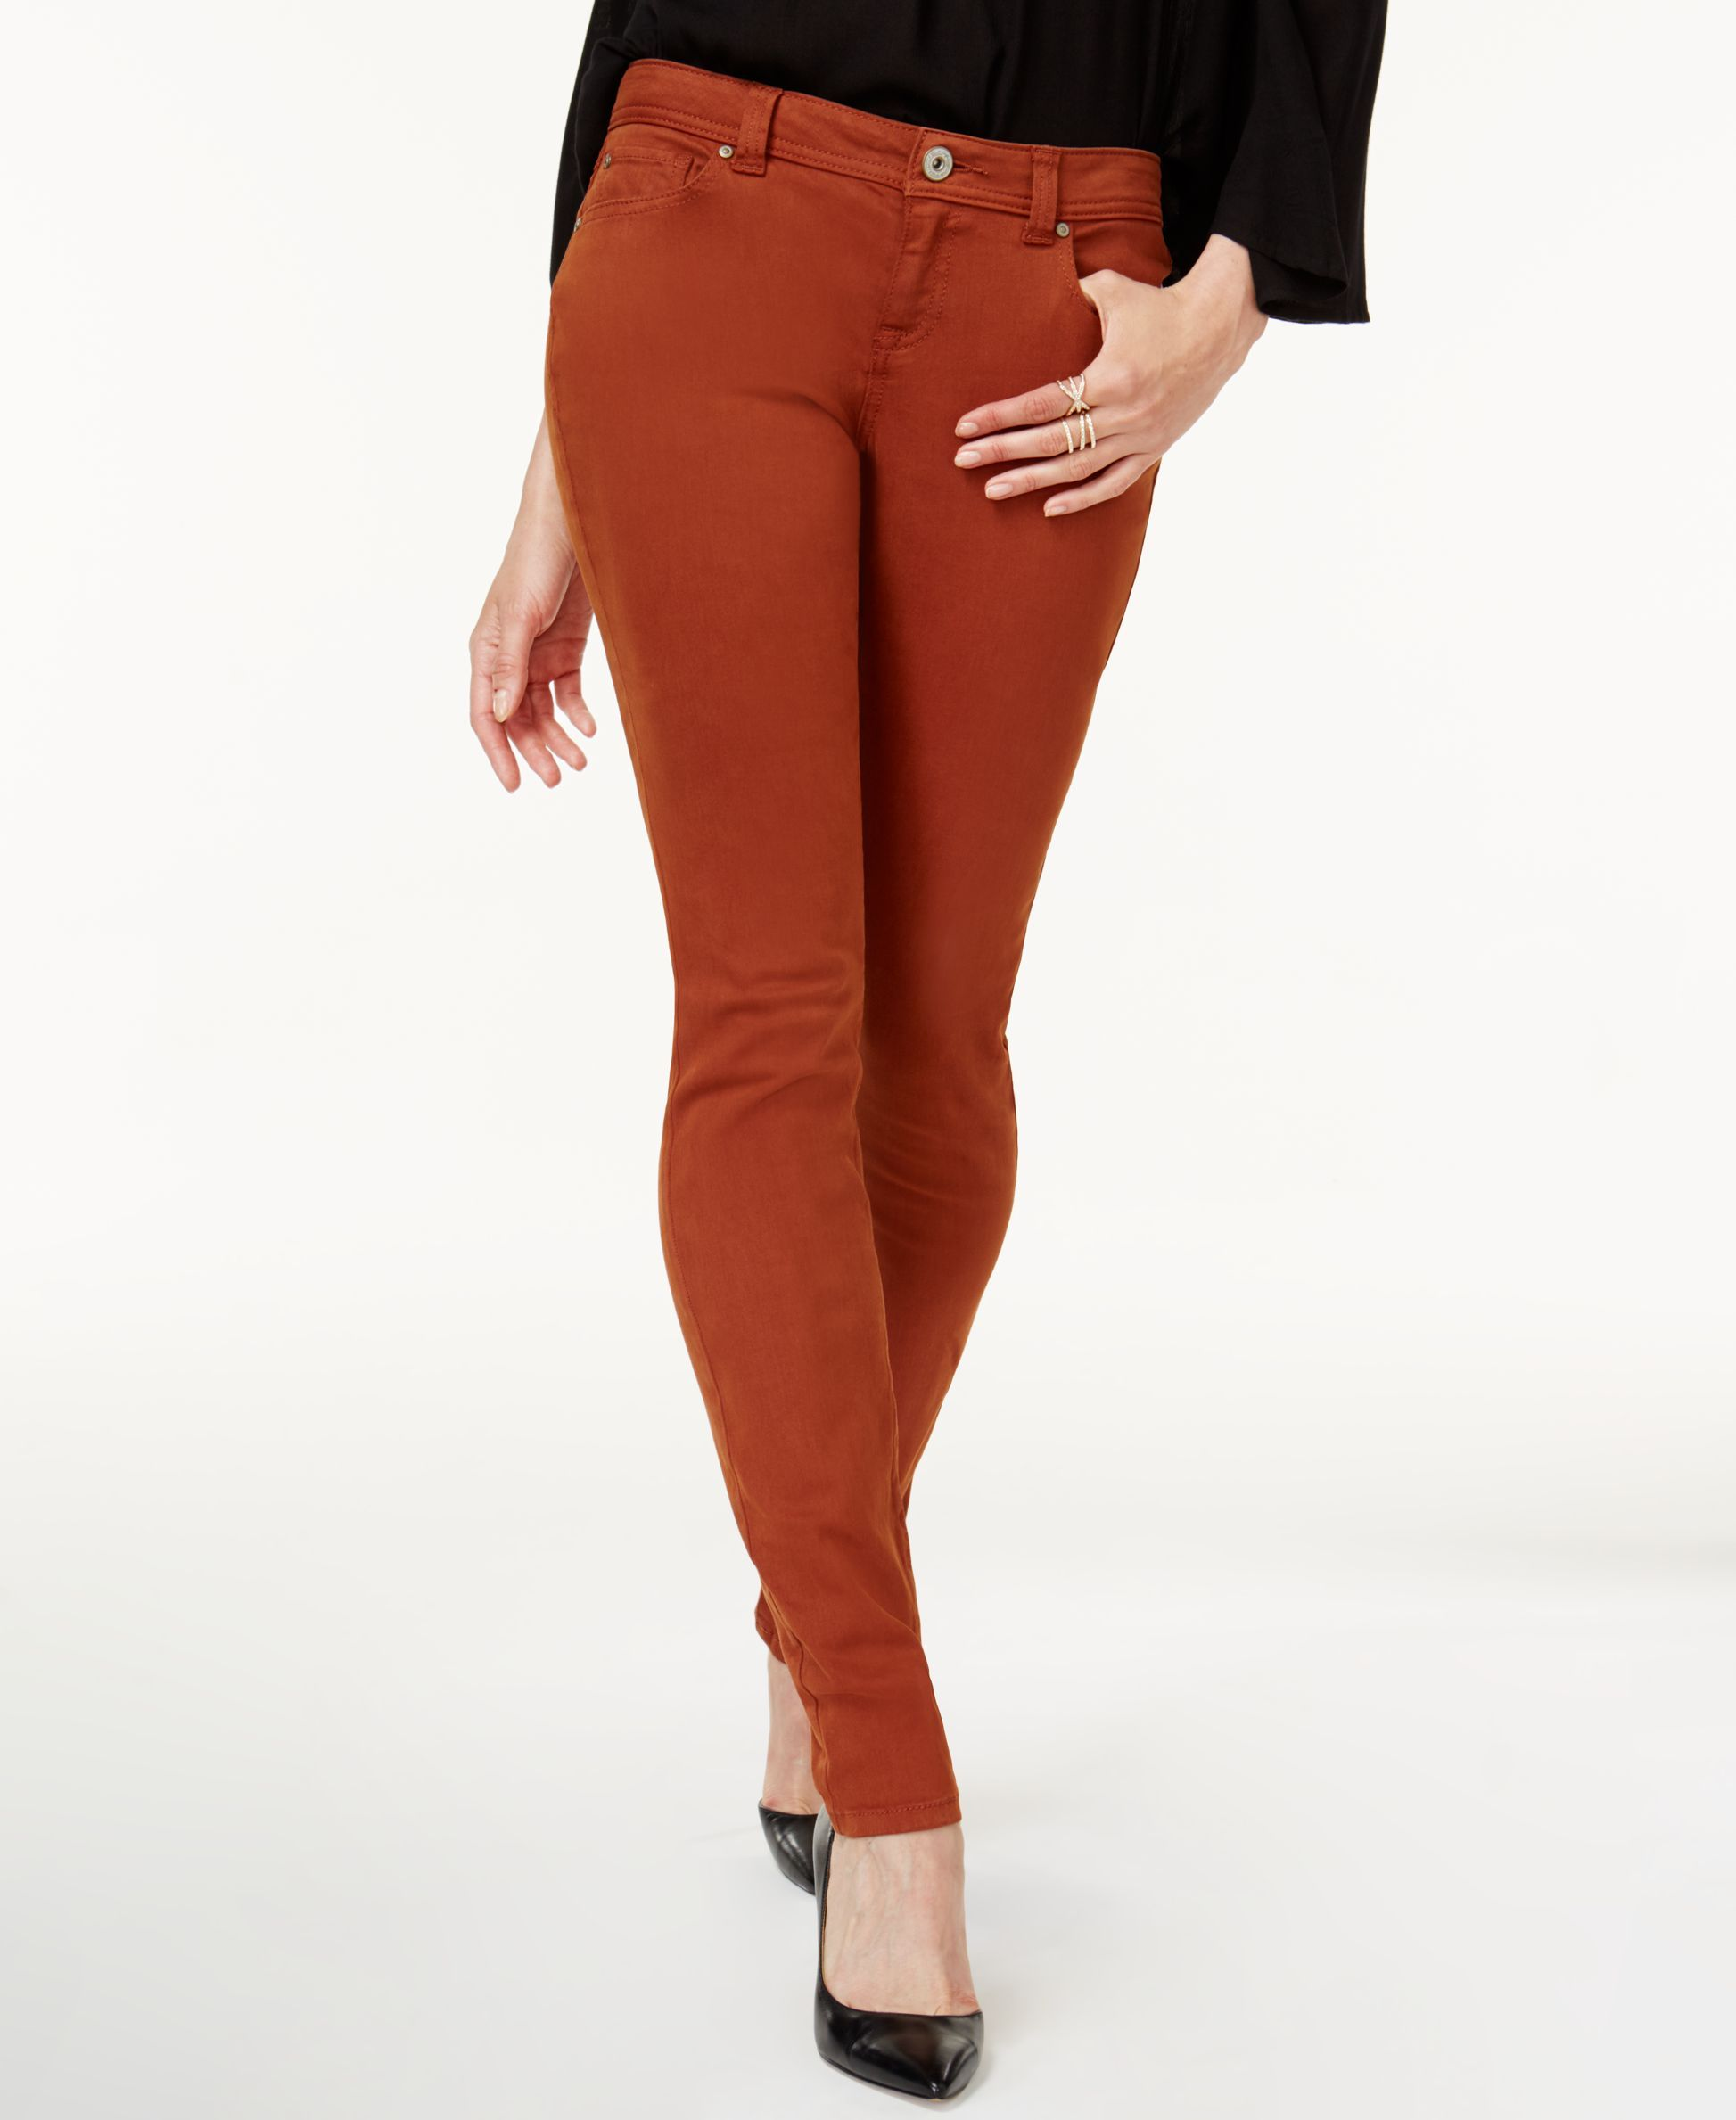 a246477ed156 I.N.C. INCEssentials Curvy-Fit Skinny Jeans, Created for Macy's ...